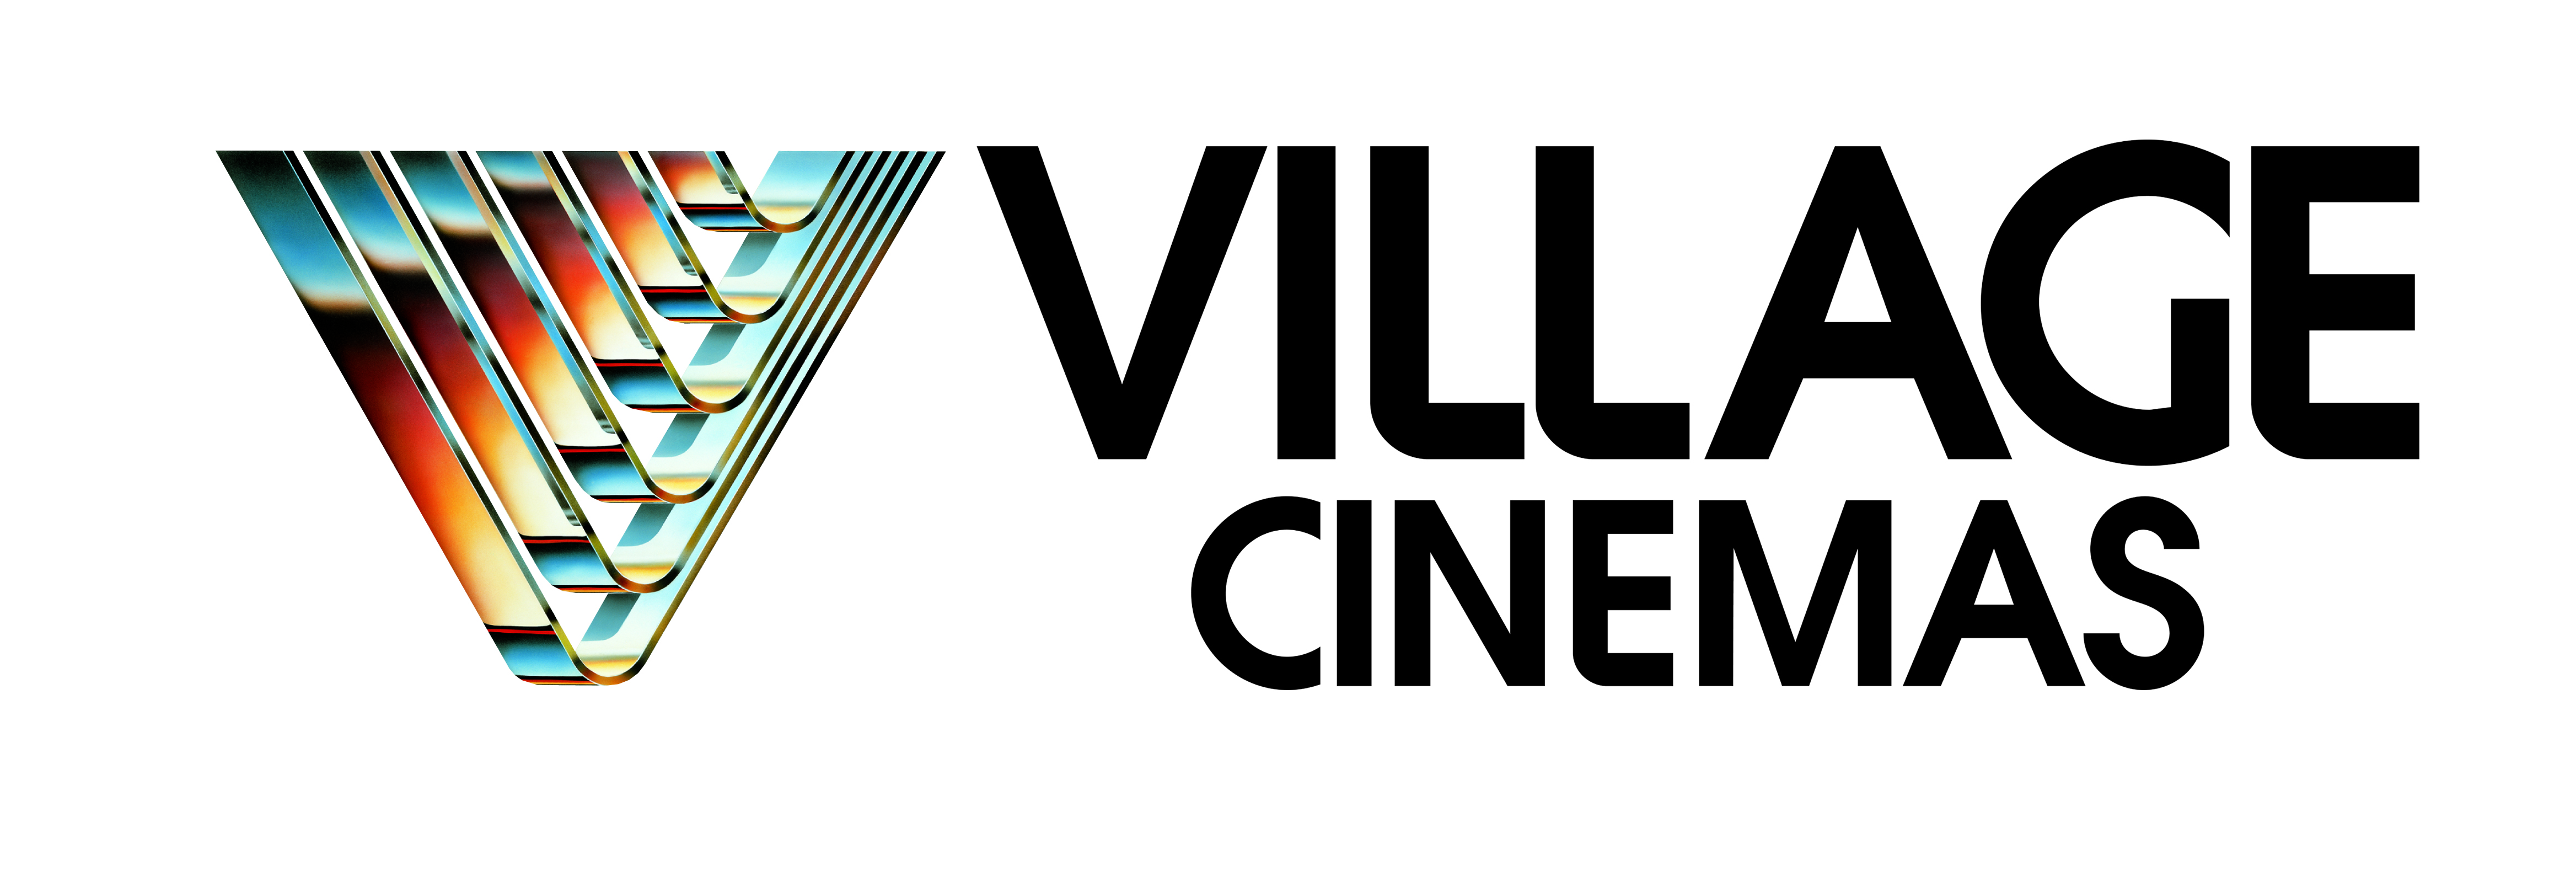 Greece_Village%20Cinemas%20Logo.jpg